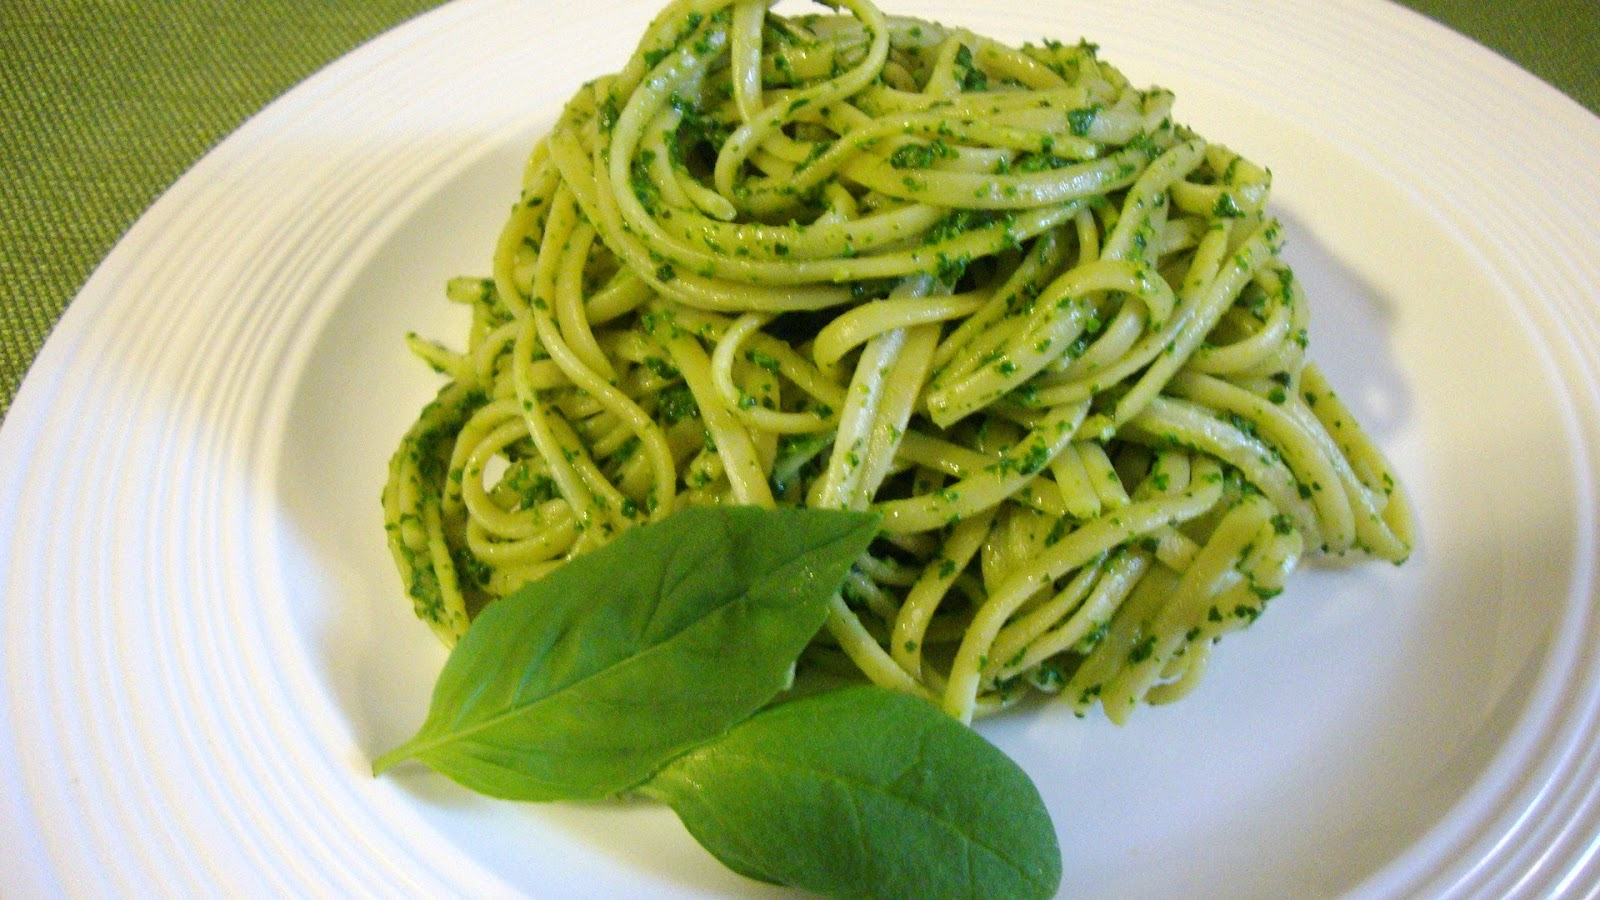 Skinny In The South: Creamy Spinach and Basil Pesto with Linguine